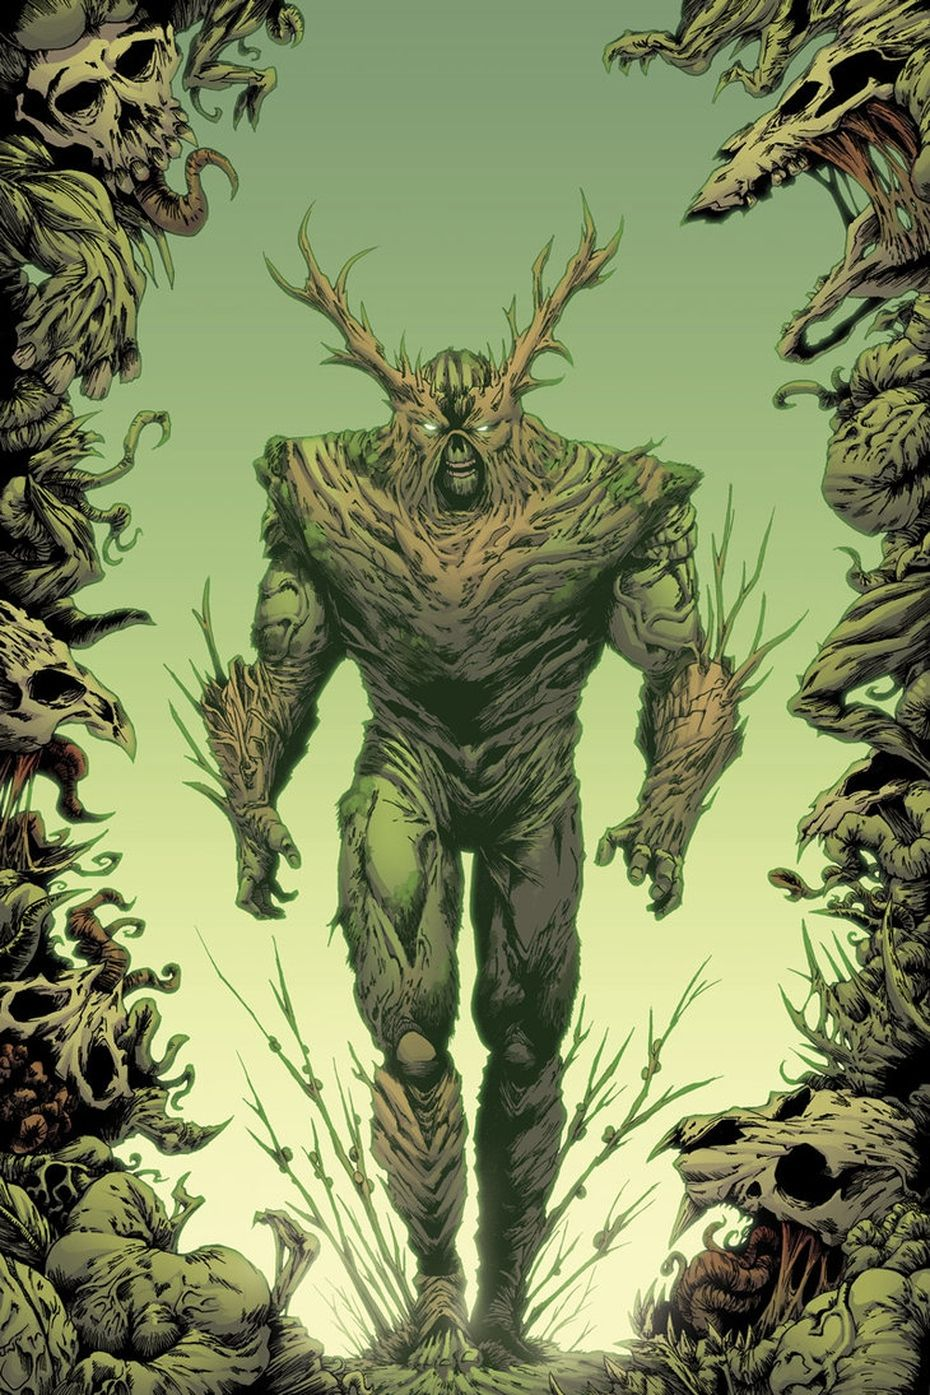 Swamp Thing (Alec Holland) is a fictional character, a superhero in the DC Comic universe. Created by Len Wein and Bernie Wrightson, He first appeared in House of Secrets #92 in 1971. He is an elemental creature who shares a connection to all plant life on the planet Earth through a network called the Green. He is a mass of vegetable matter that absorbed the memories and personality of Alec Holland, a botanist who died in a swamp shortly after creating a hormonal Bio-Restorative Formula for plan #swampthing